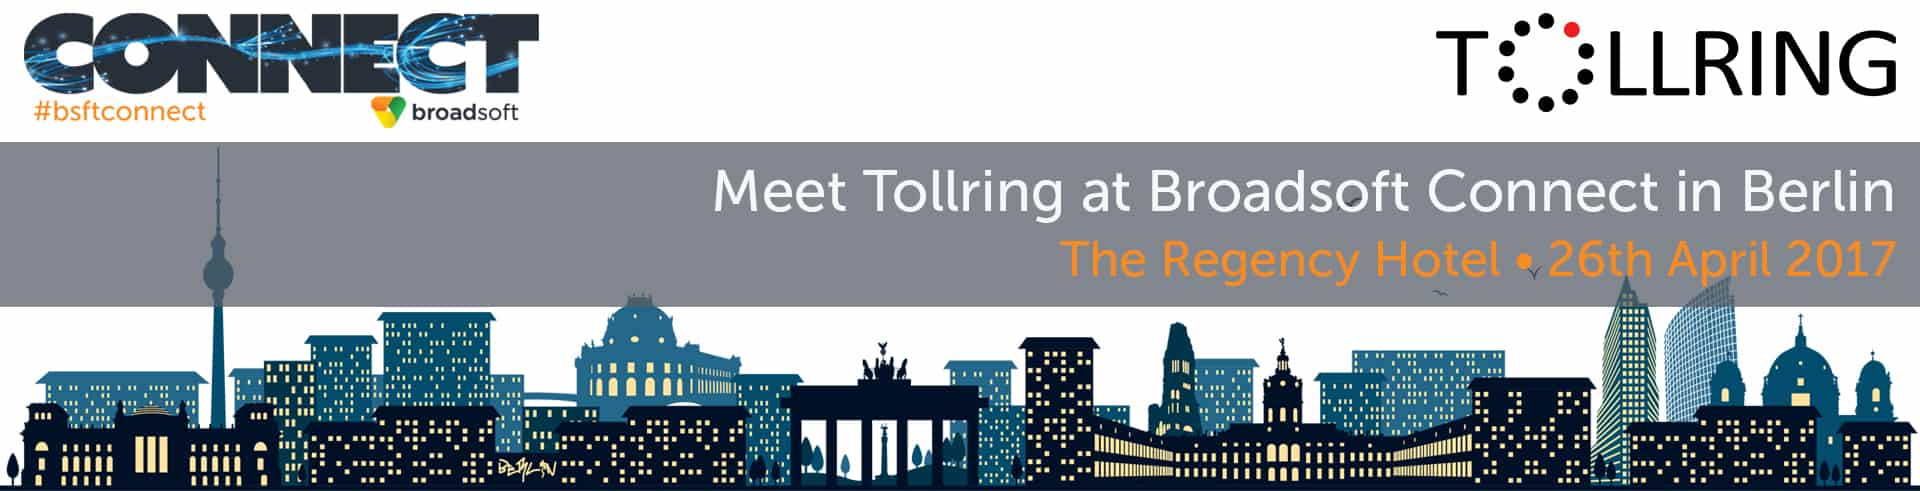 Meet Tollring at Broadsoft Connect in Berlin